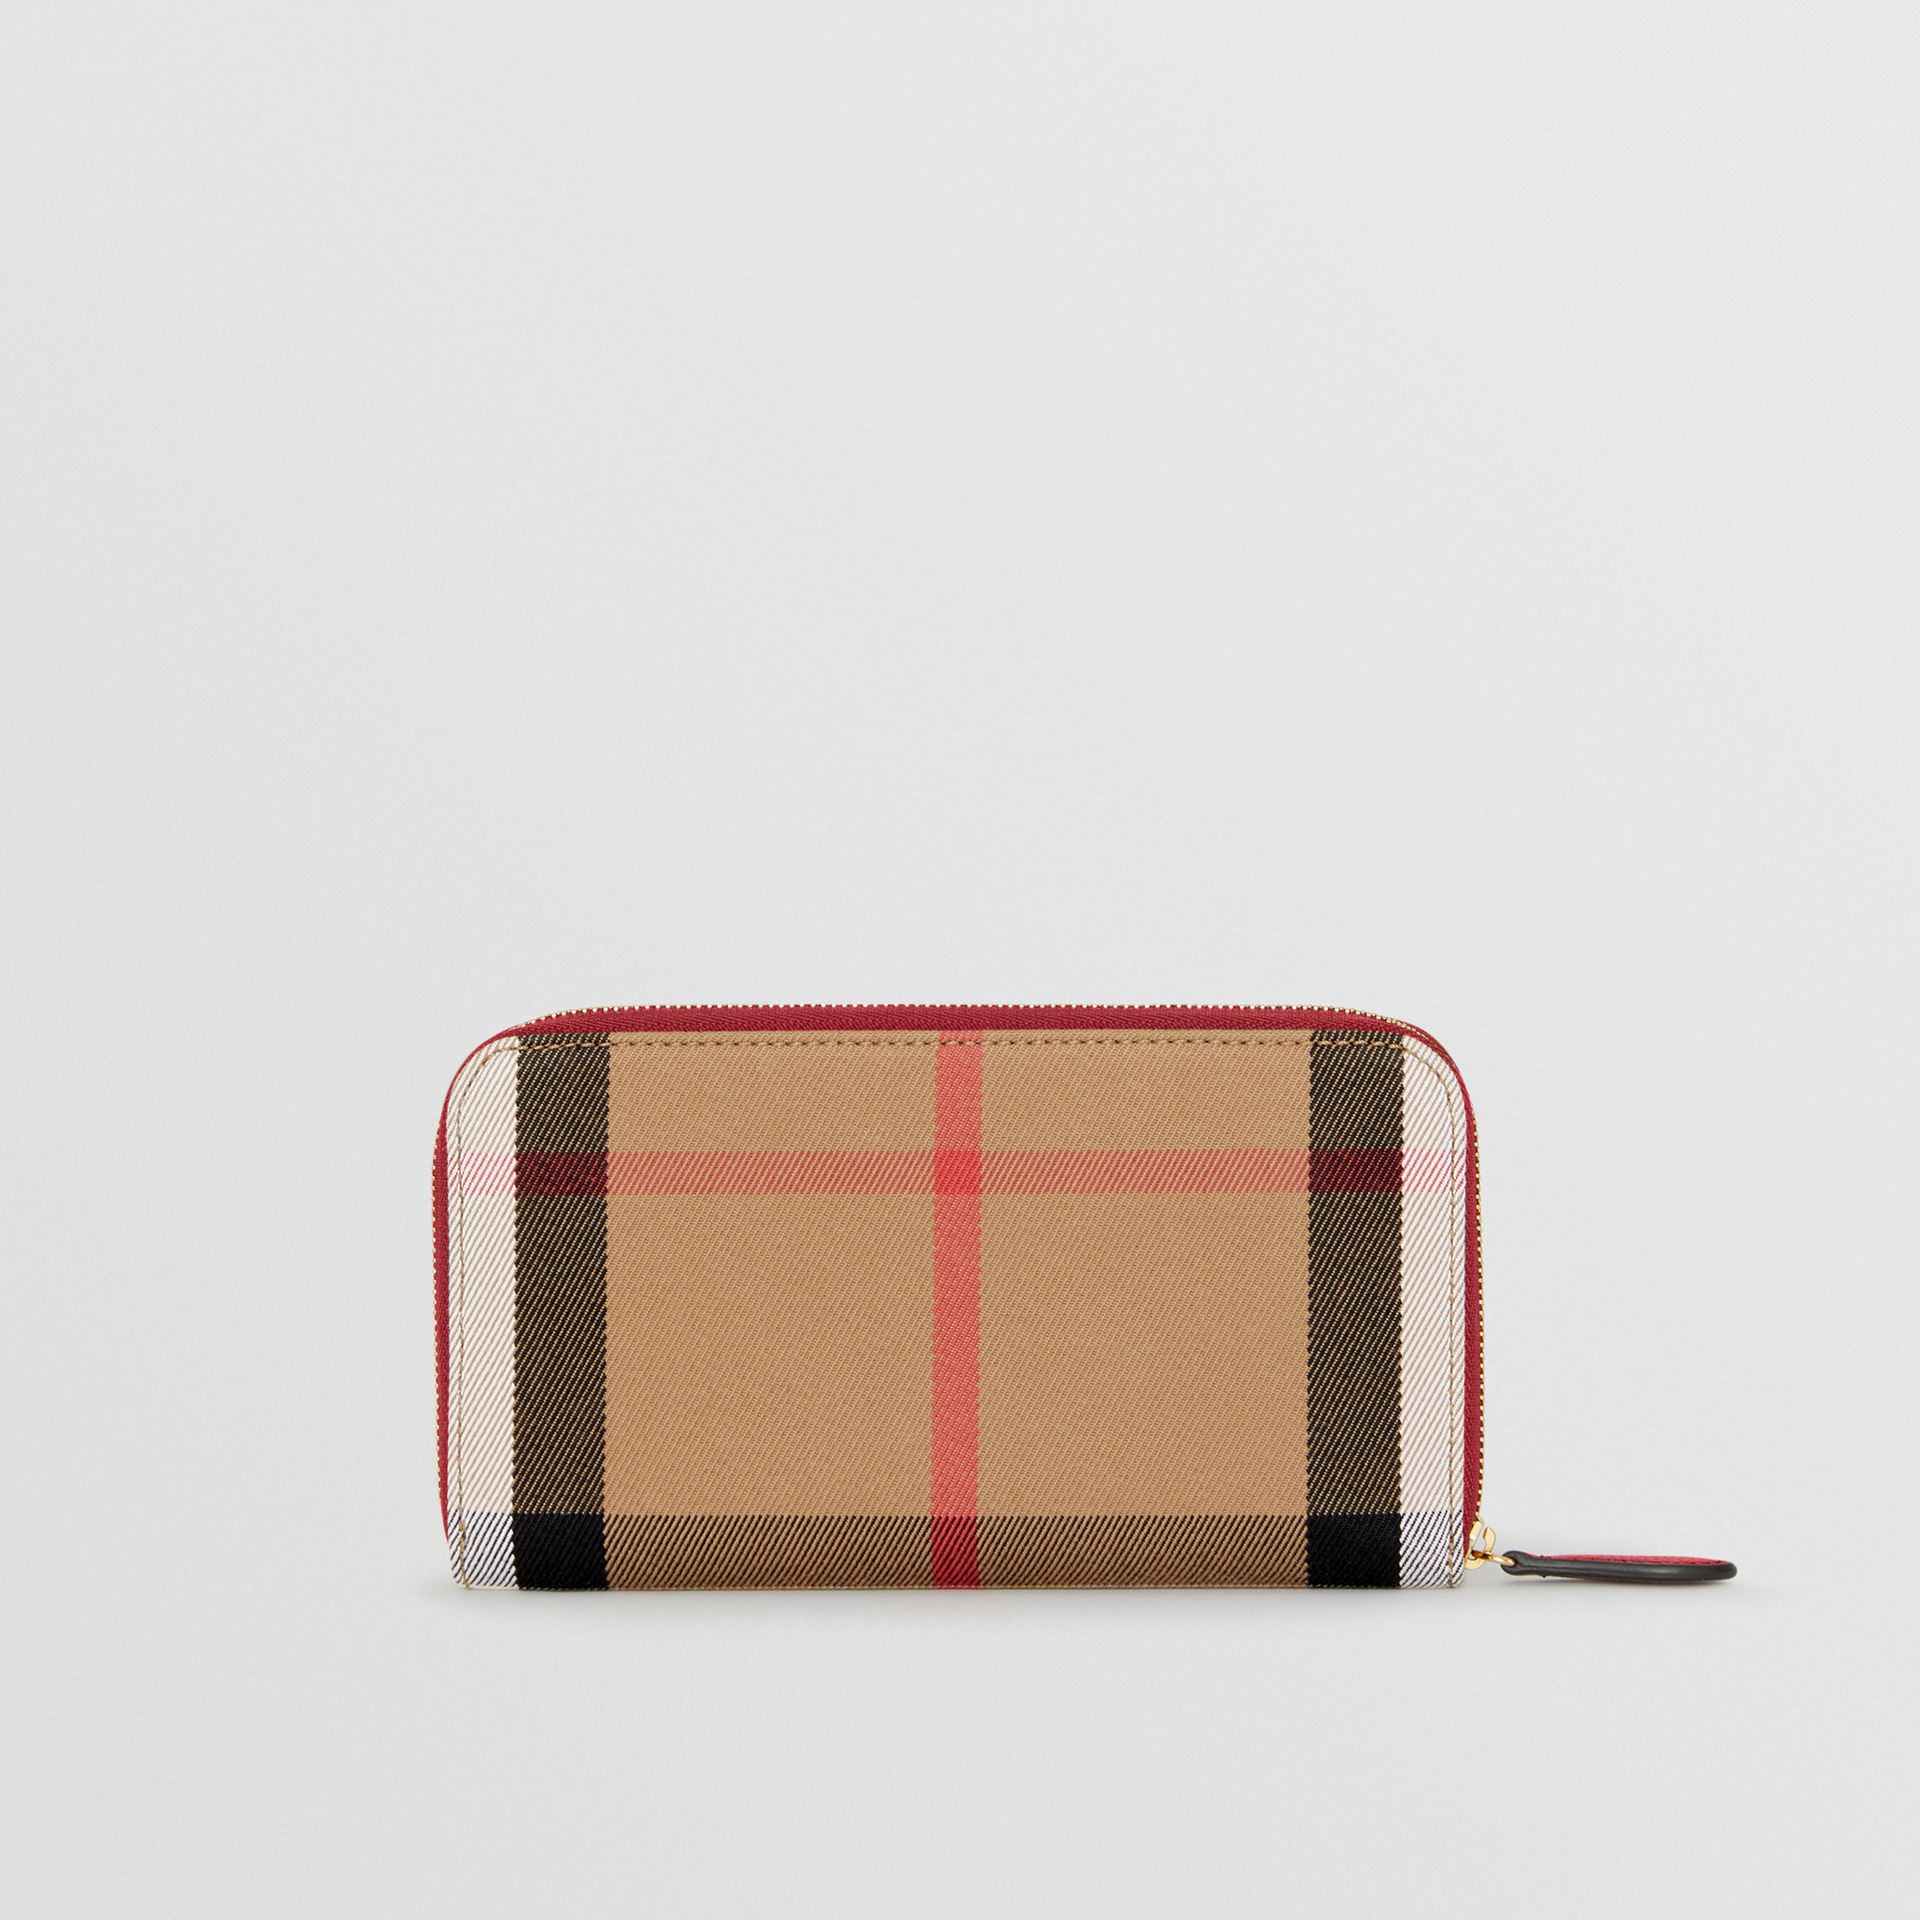 House Check and Leather Ziparound Wallet in Russet Red - Women | Burberry United Kingdom - gallery image 4